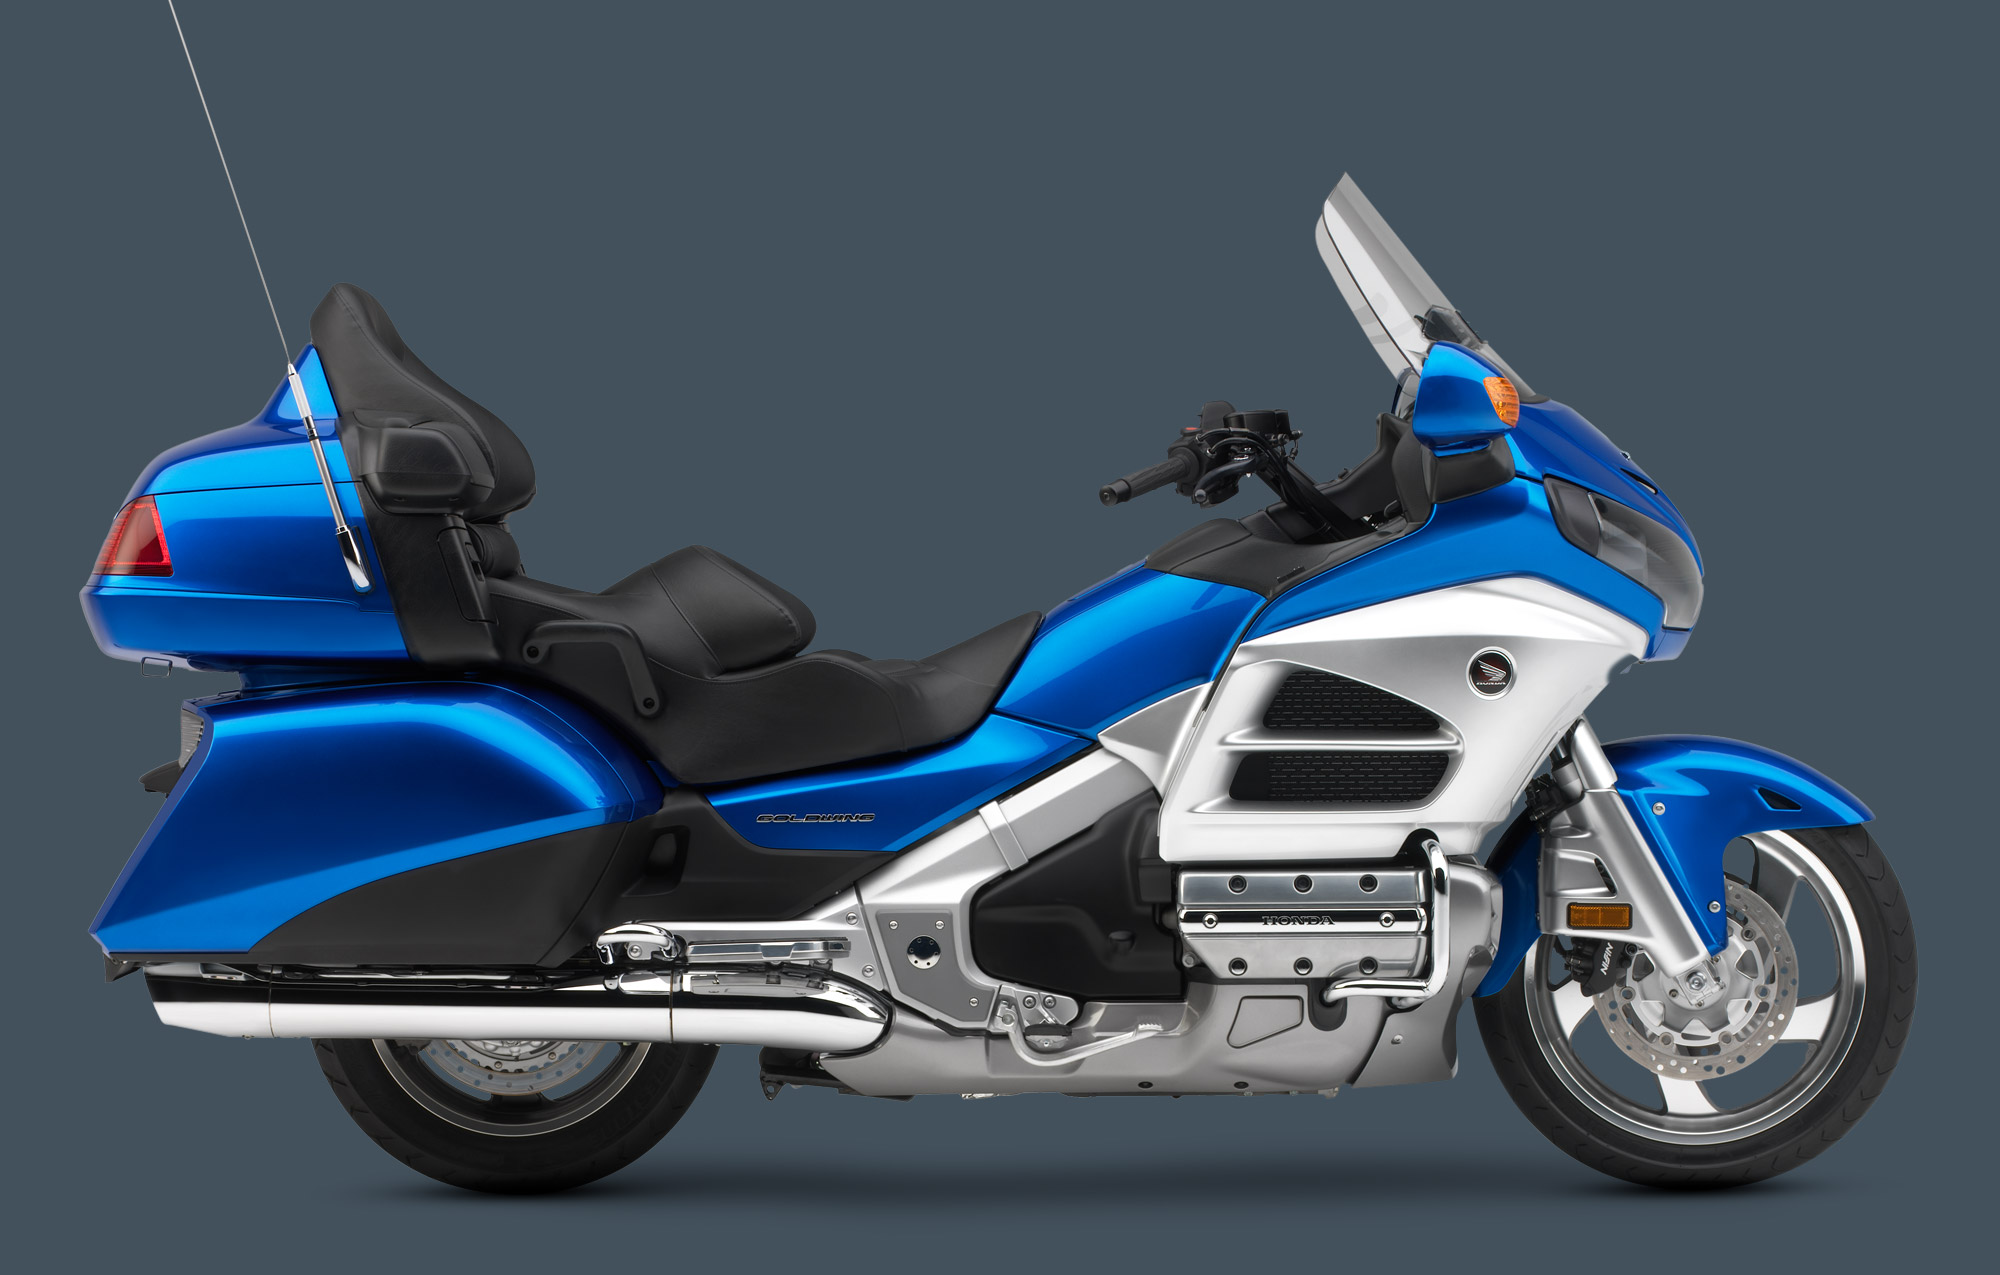 GoldWing_2012_UltraBlueMetallic